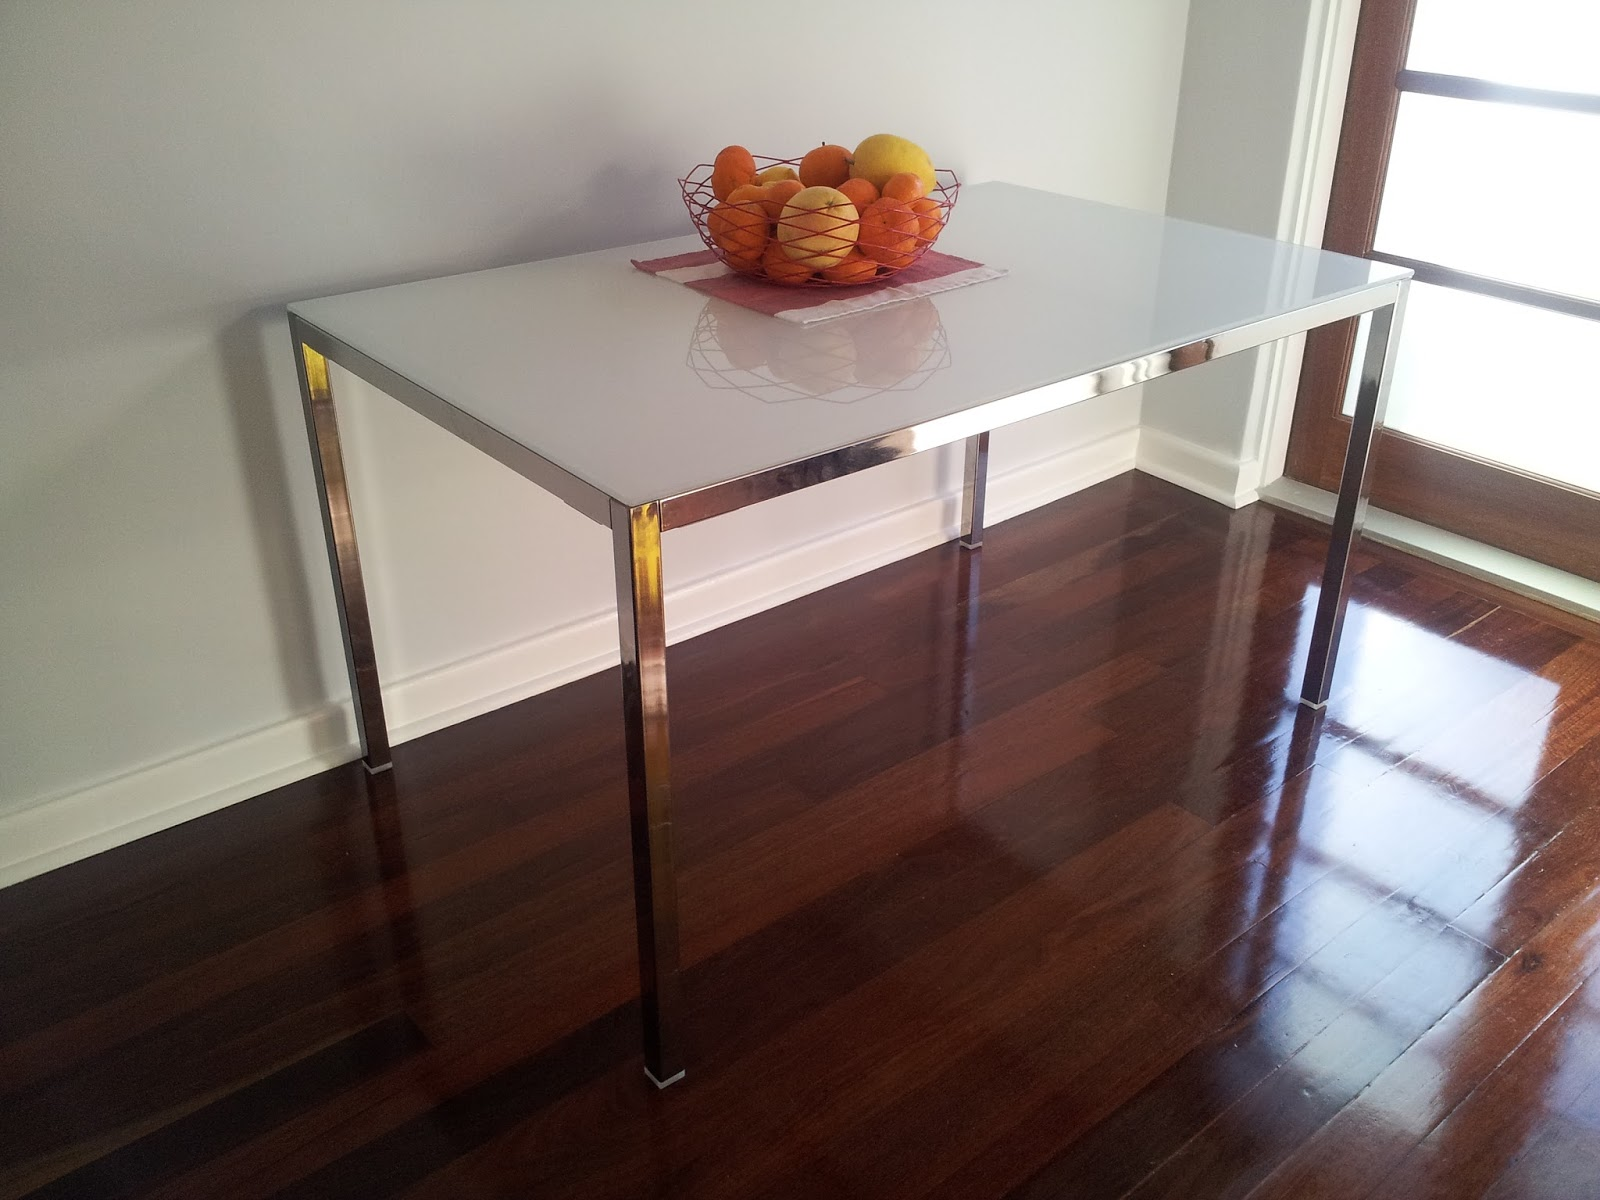 jarrah jungle kitchen and dining furniture picks so far